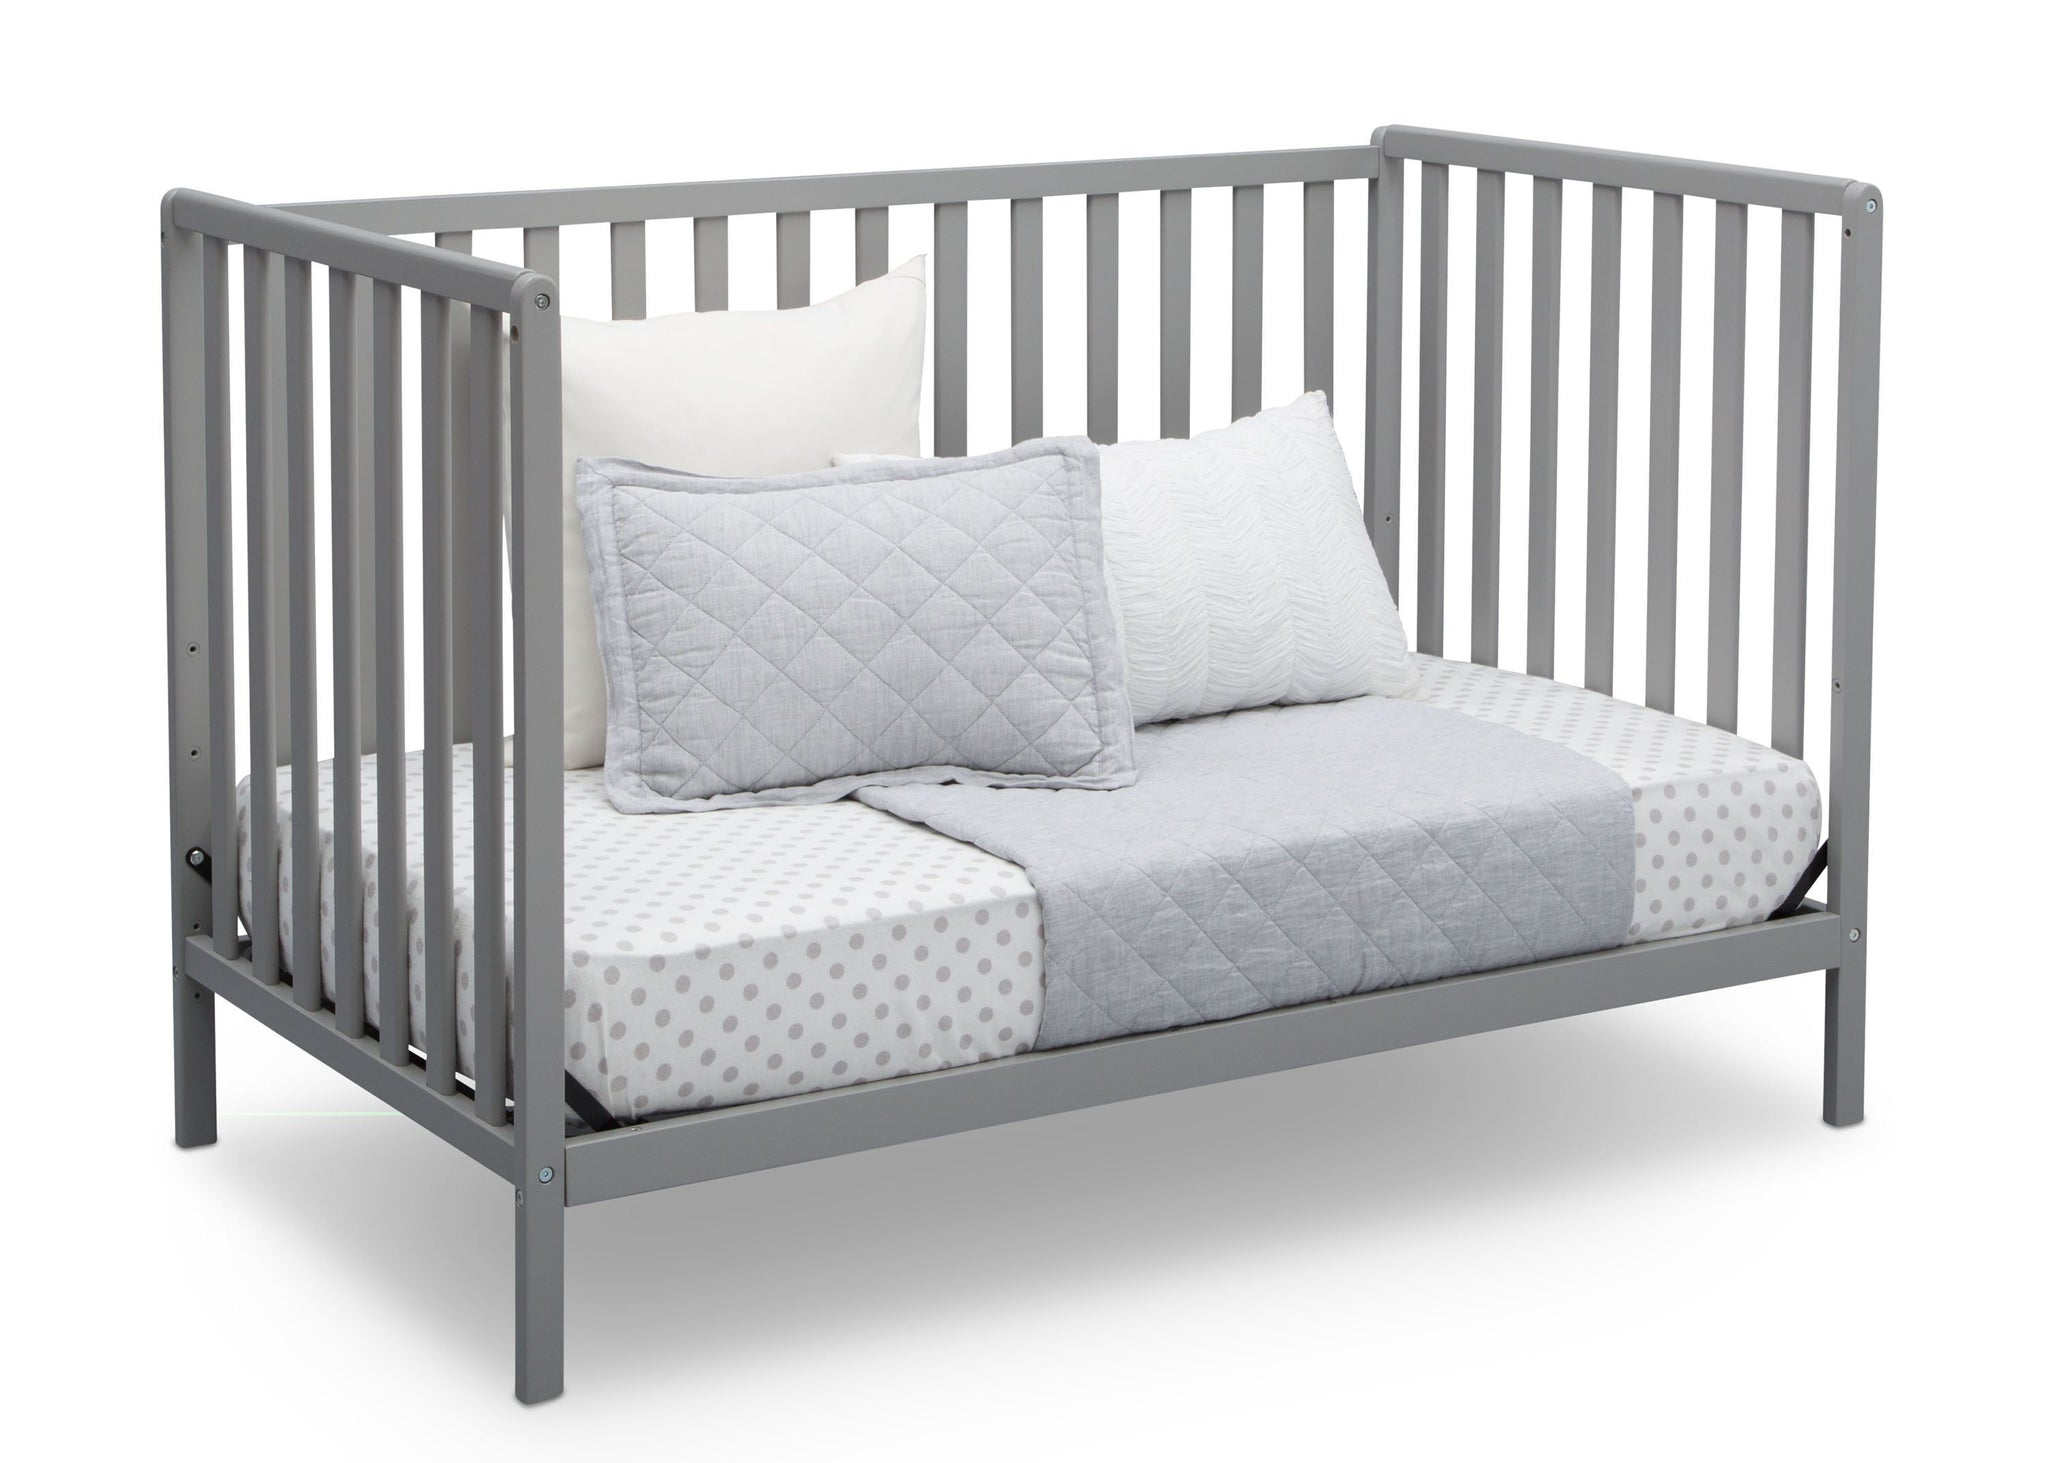 Delta Children Grey (026) Heartland 4-in-1 Convertible Crib, Daybed View a5a